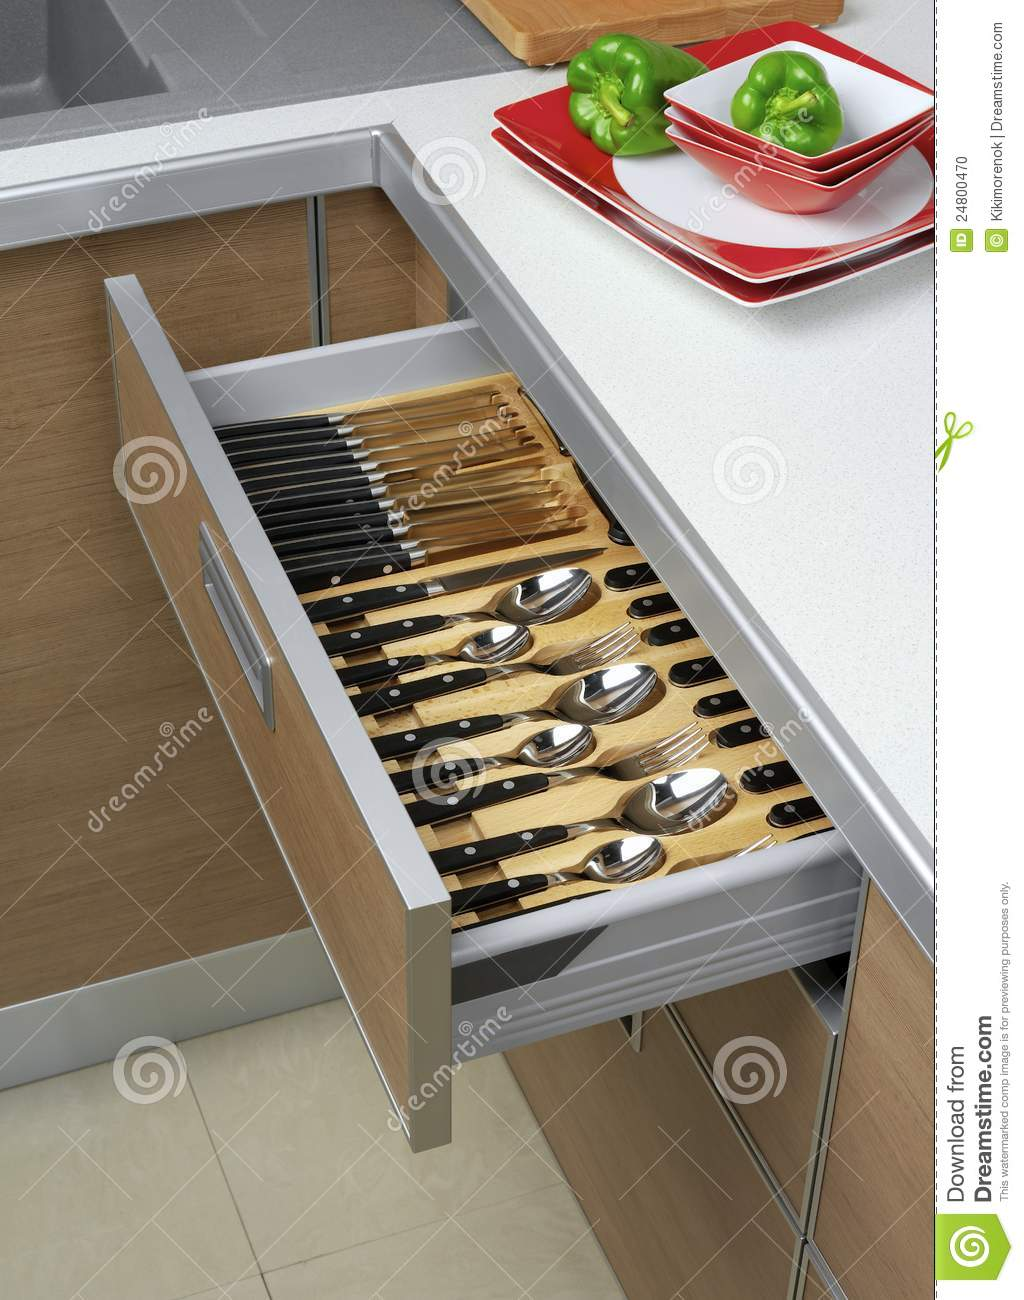 Open Kitchen Drawers Stock Photo Image Of House Wardrobe